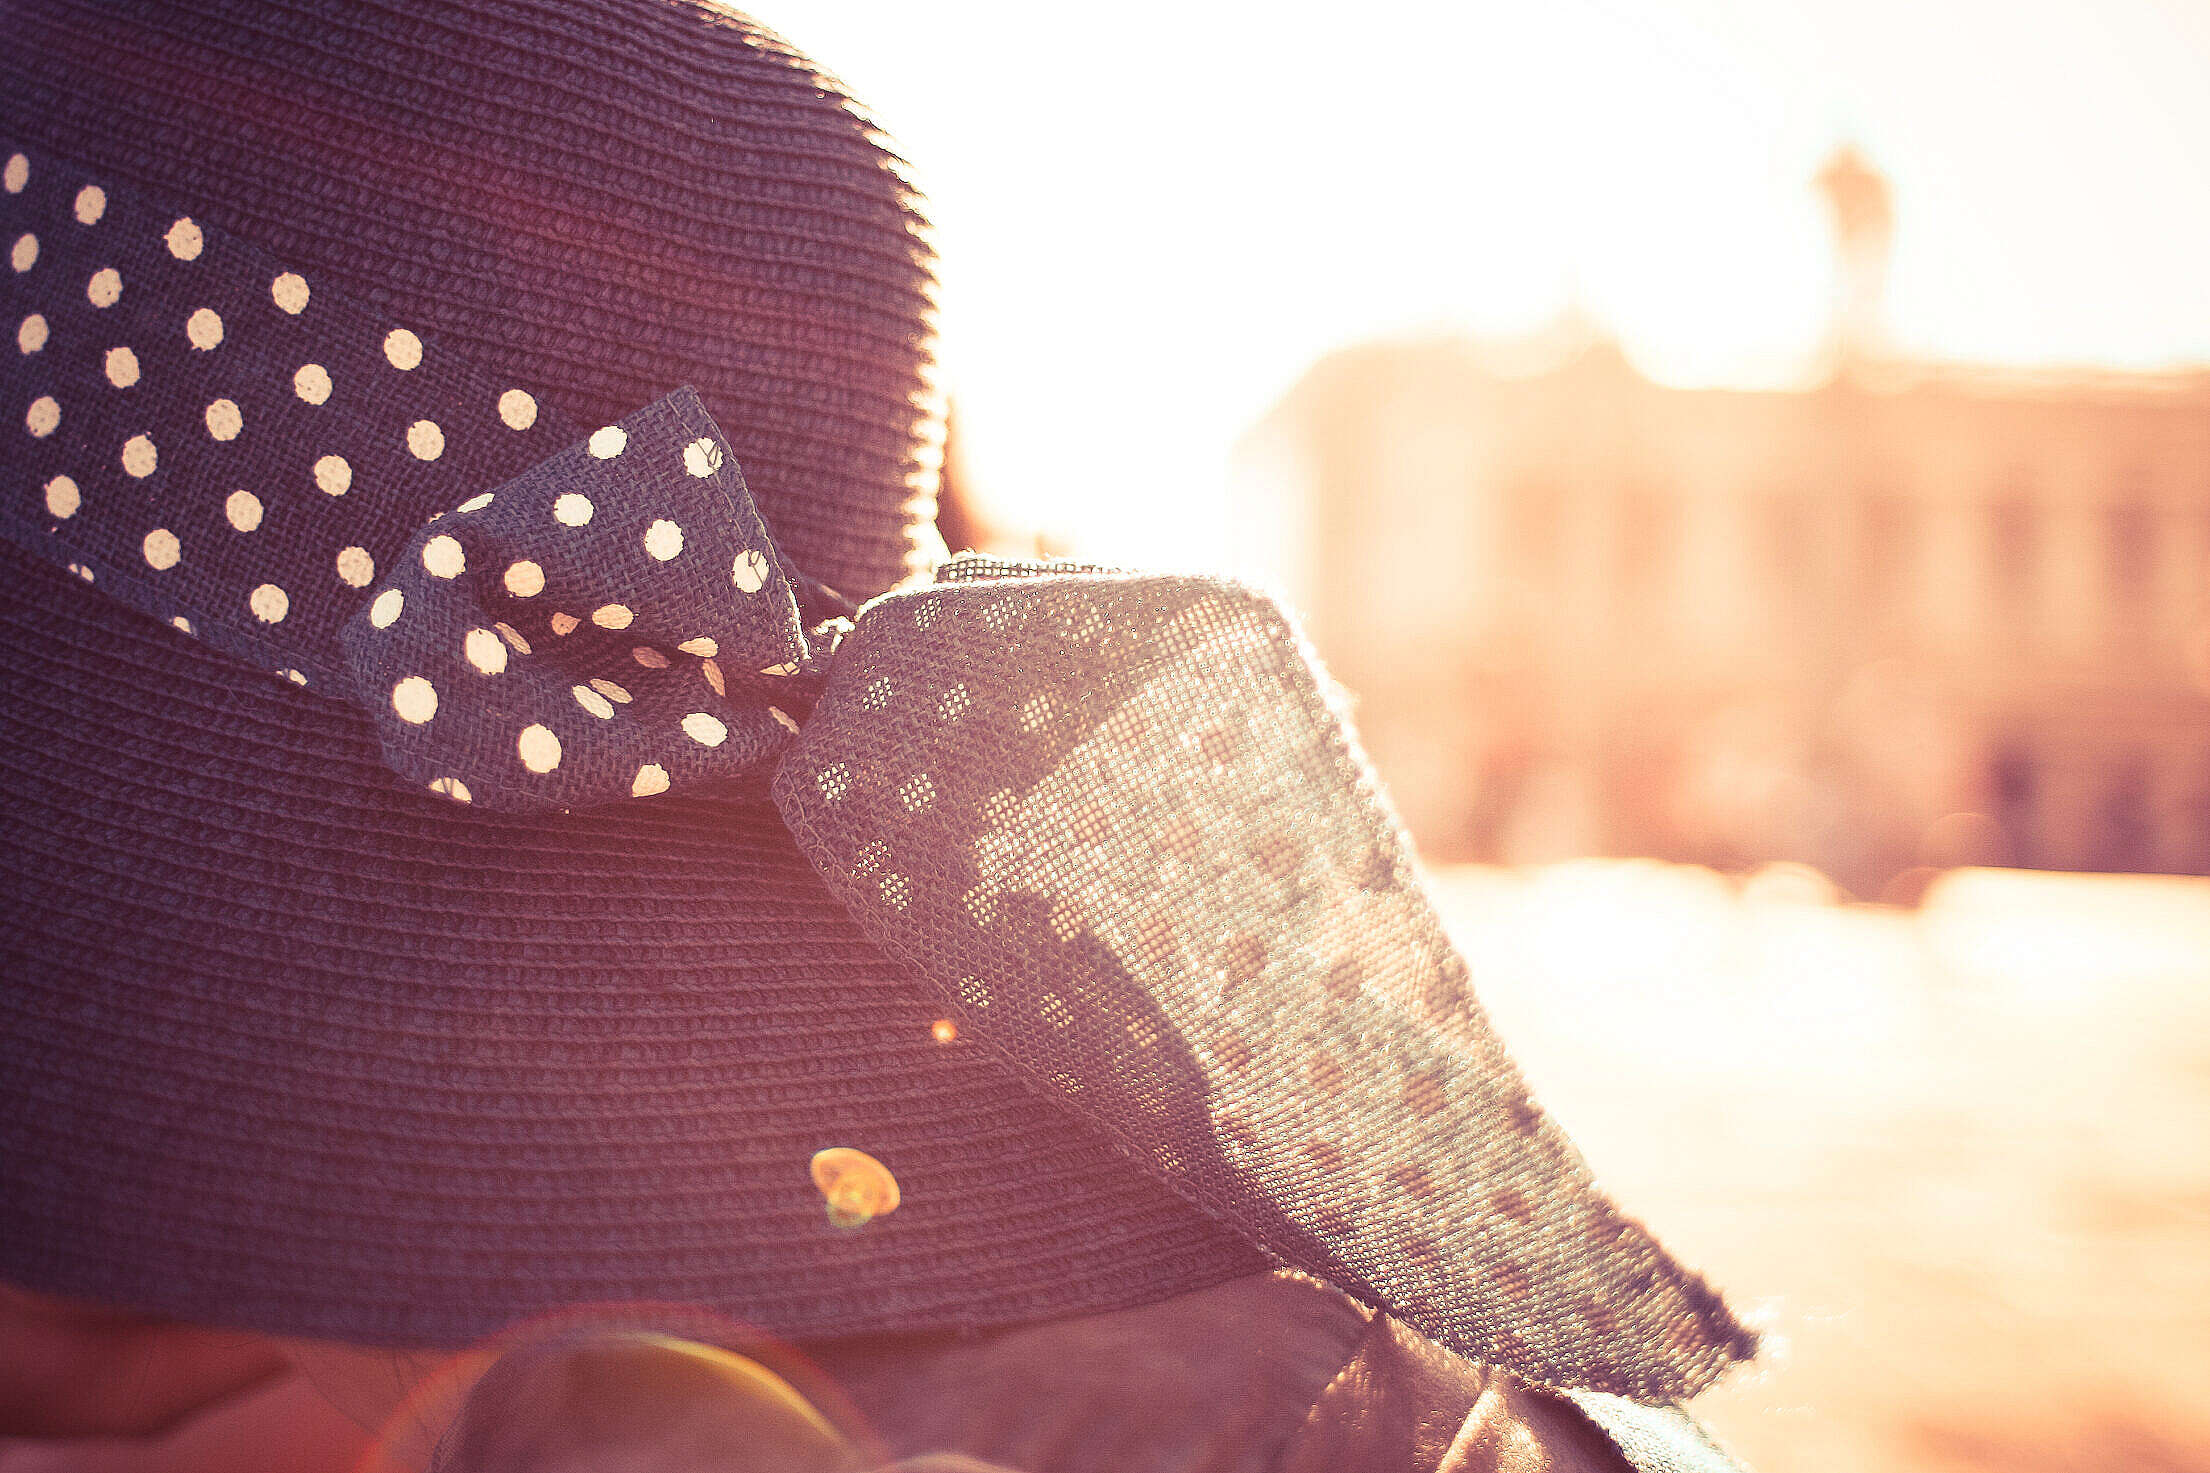 Girl Hat in Sunlights Free Stock Photo